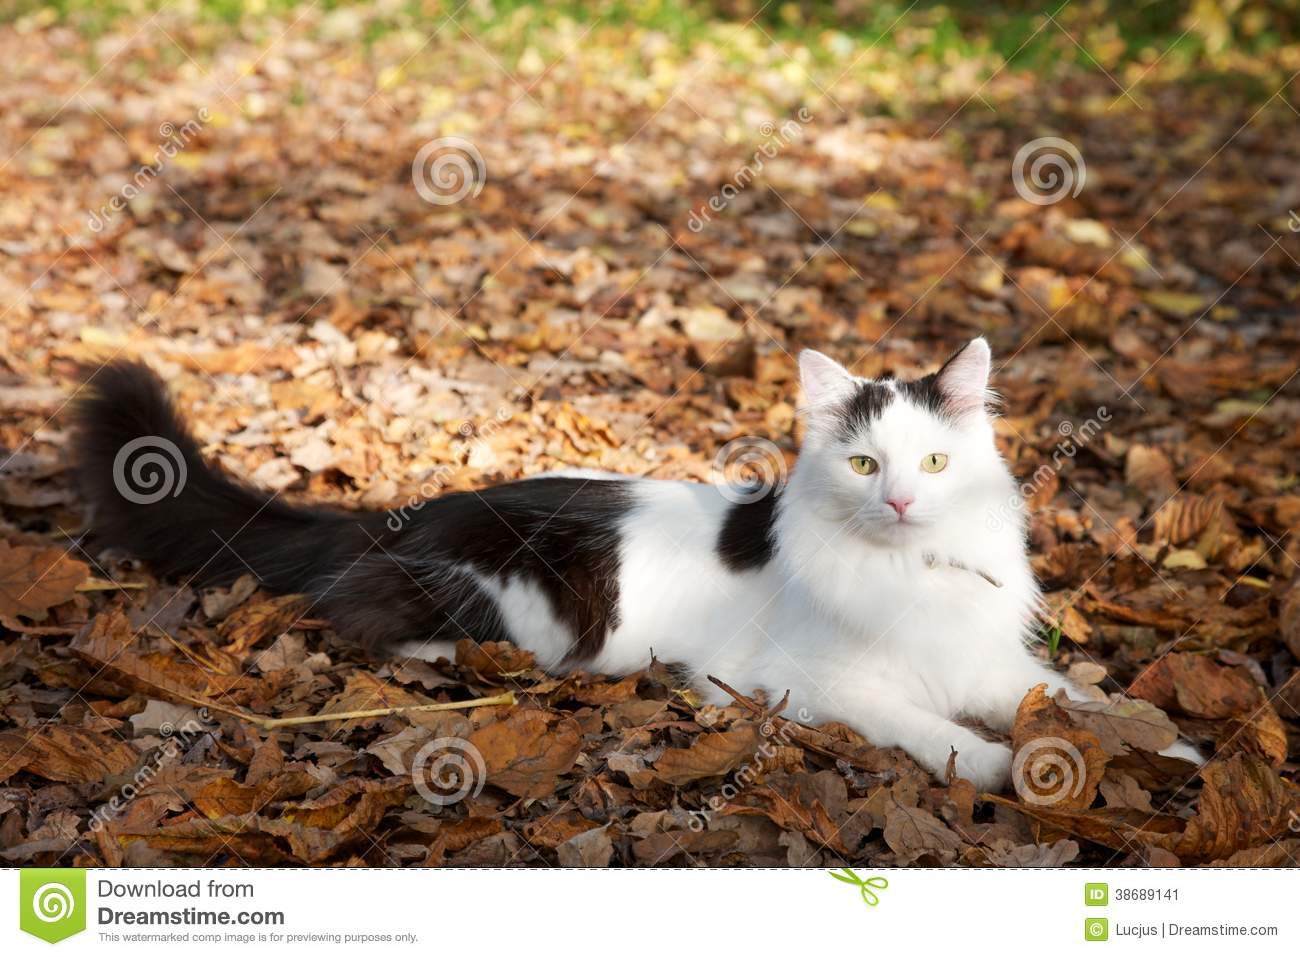 Fluffy Black And White Cat On Leaves Stock Image - Image ...